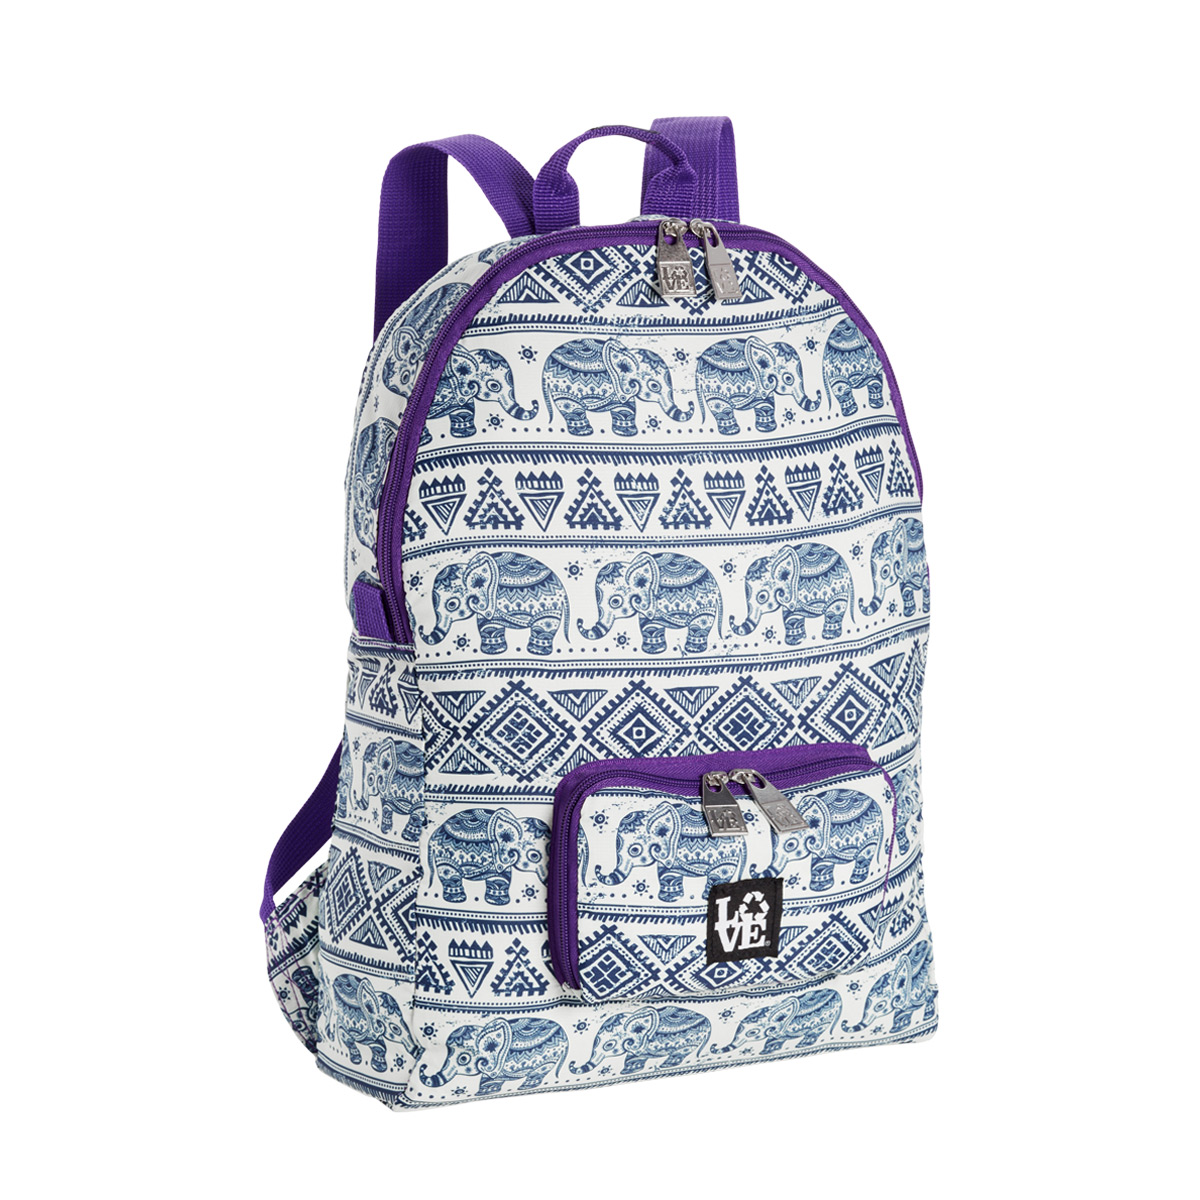 Elephant in the Room Stash It Backpack |